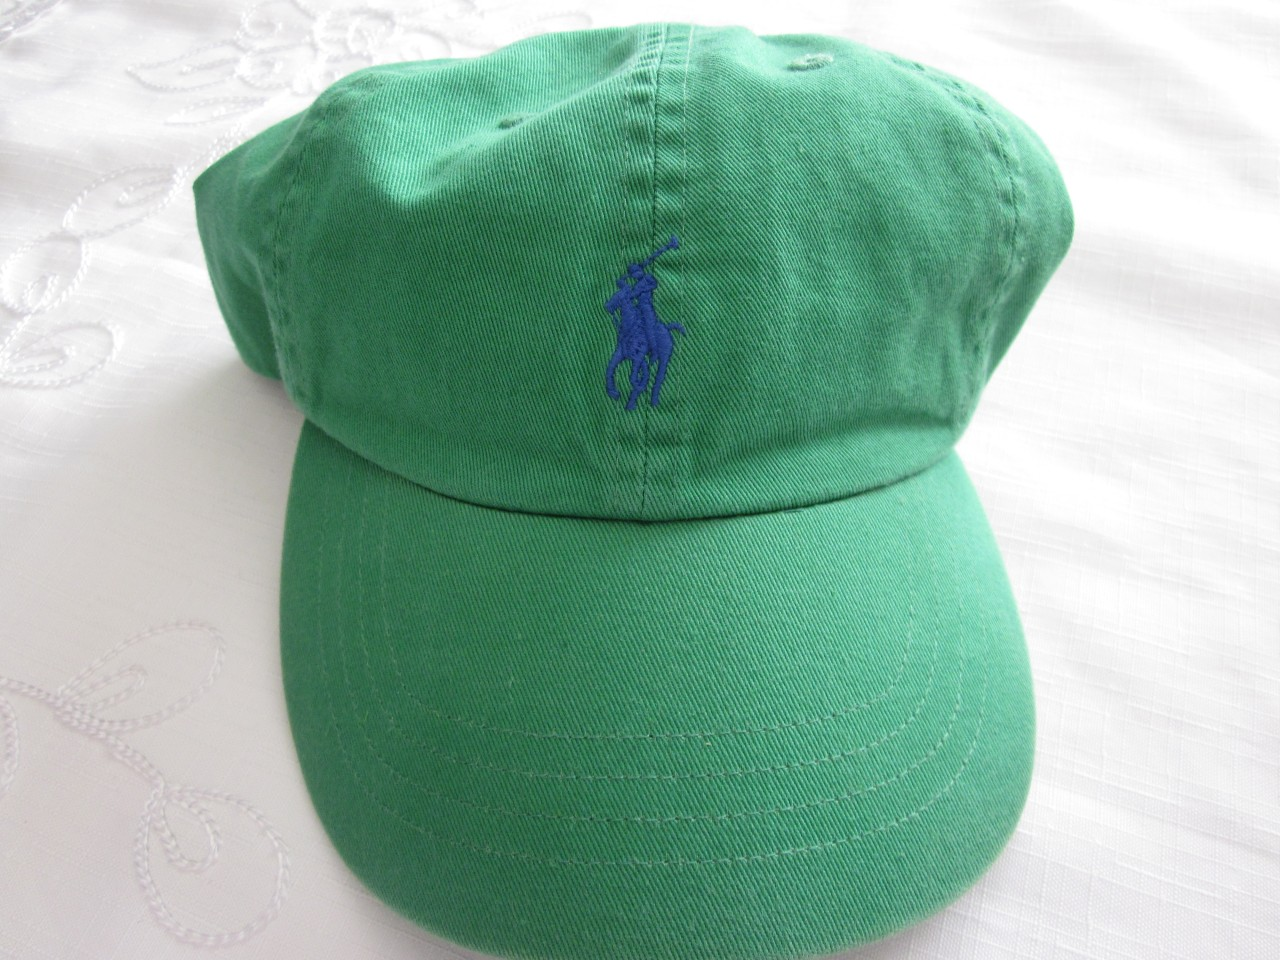 NWT-Polo-Ralph-Lauren-Baseball-classic-Pony-Cap-Hat-cap-with-classic-pony-logo